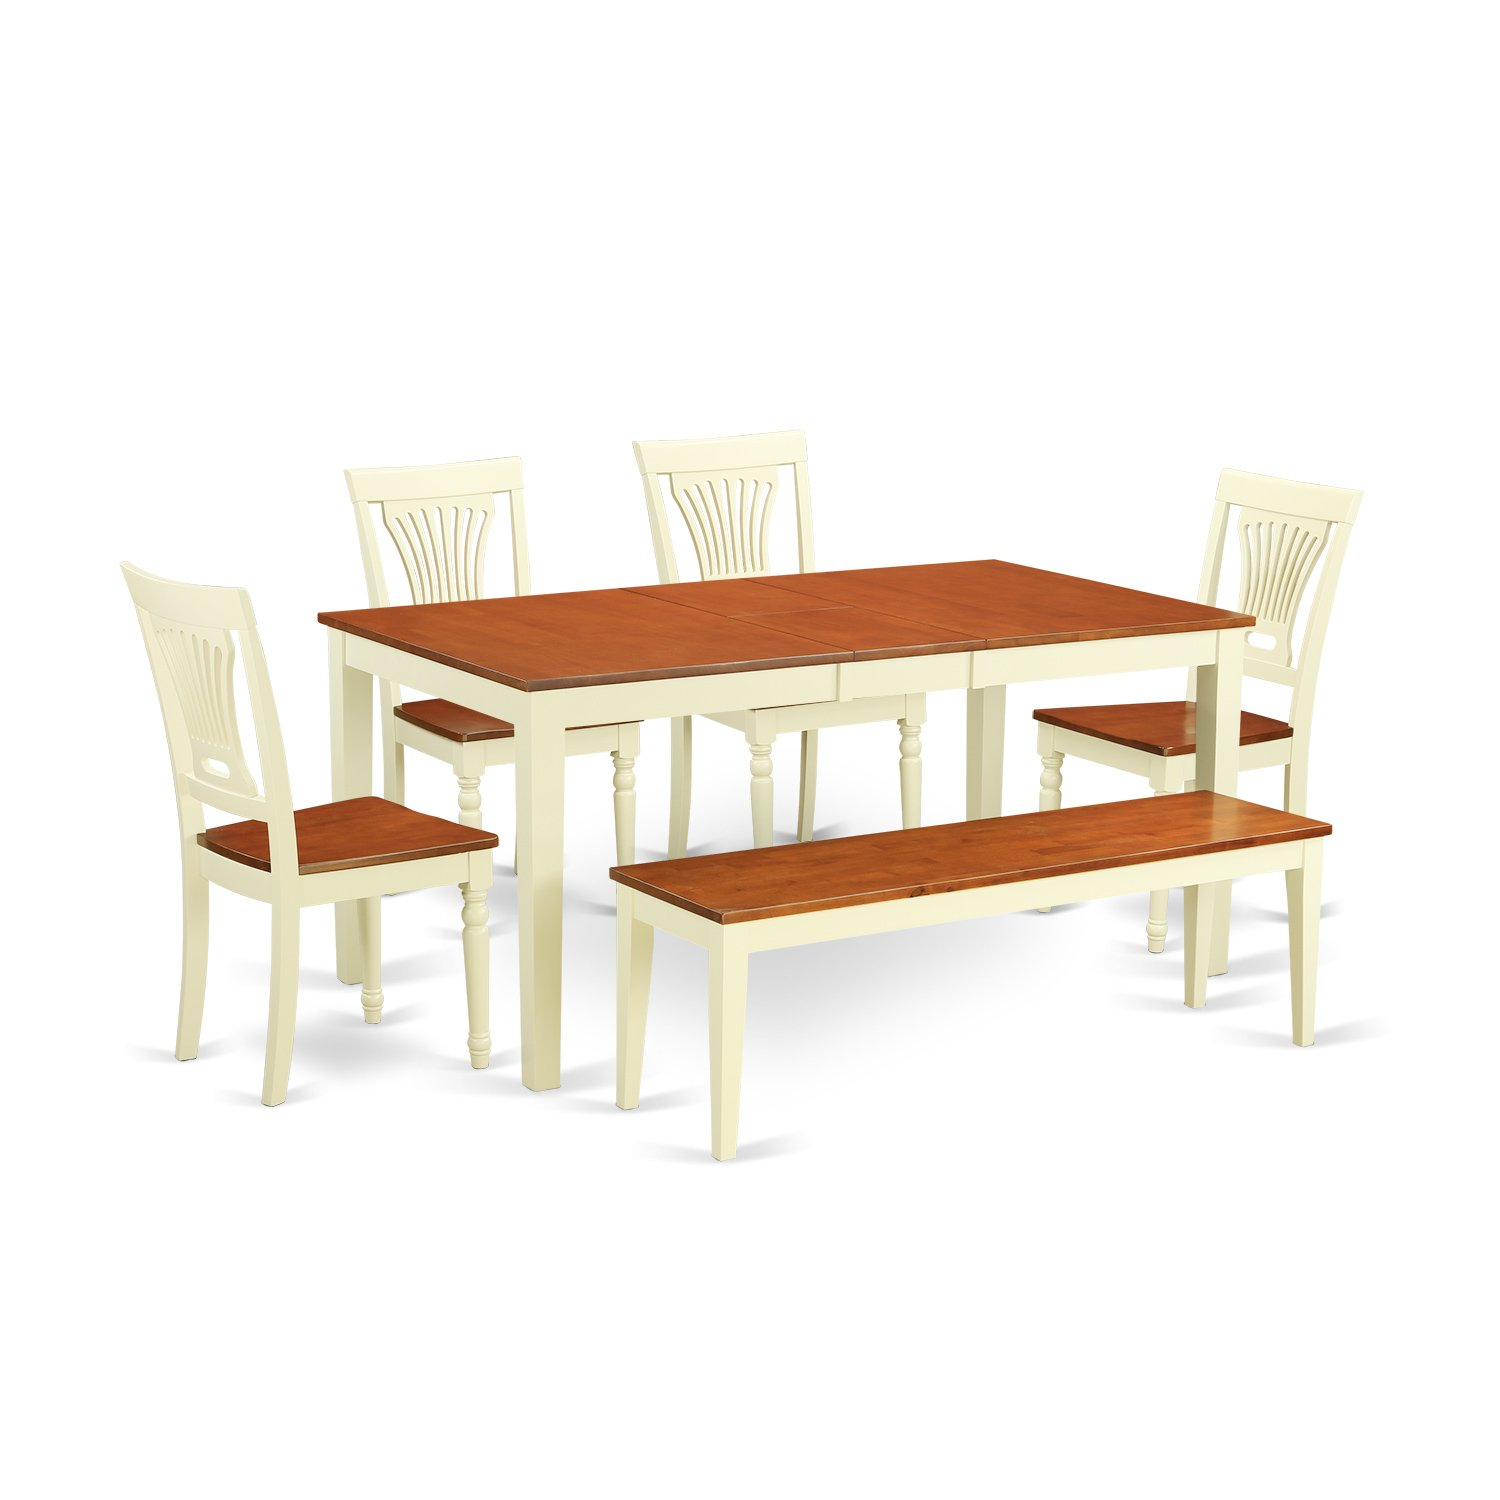 East West Furniture Nipl6 Whi W 6 Piece Dinette Table And 4  # Muebles Pestana